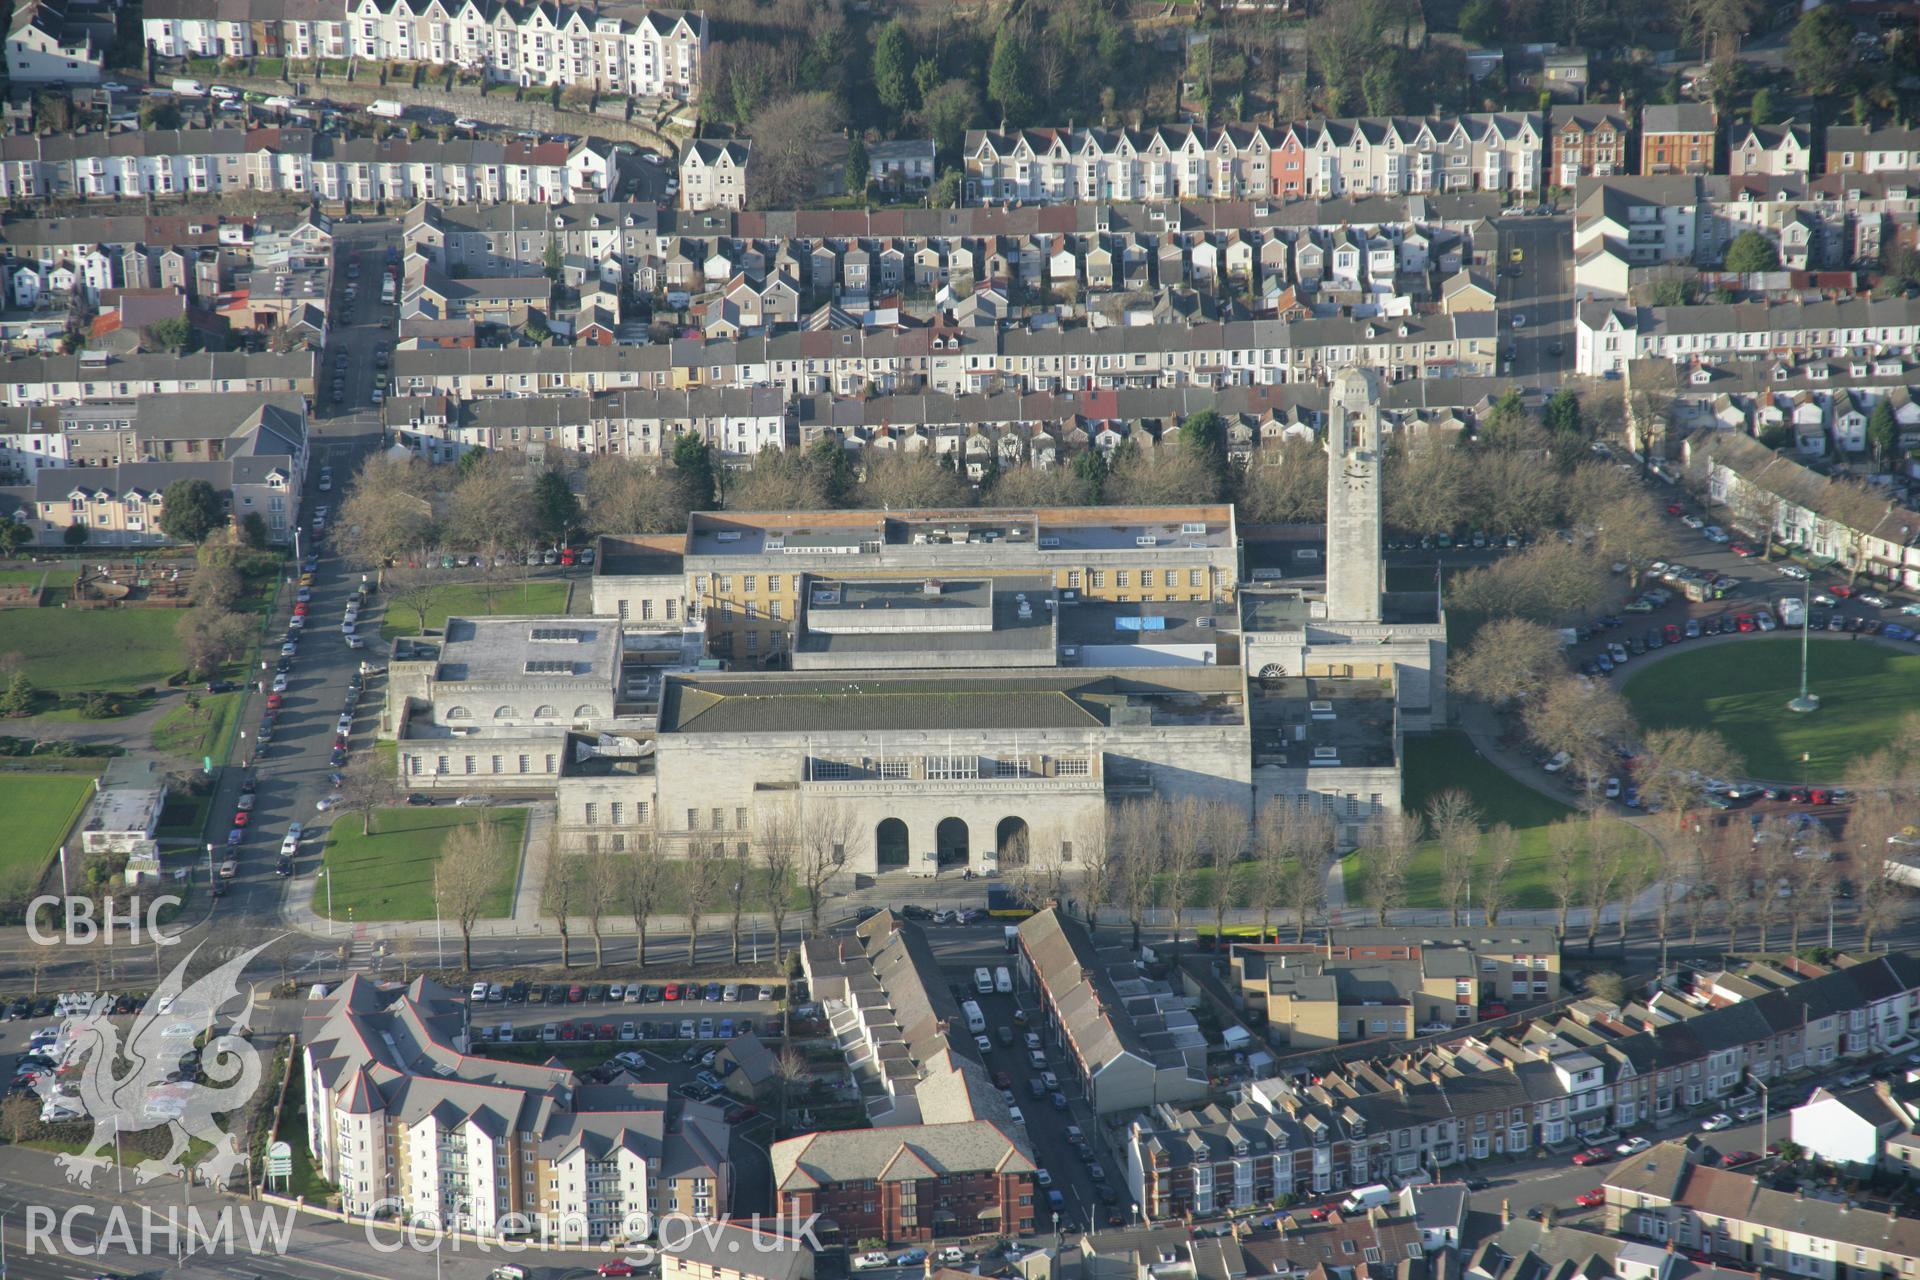 RCAHMW colour oblique aerial photograph of Guildhall, Swansea, from the south-east. Taken on 26 January 2006 by Toby Driver.